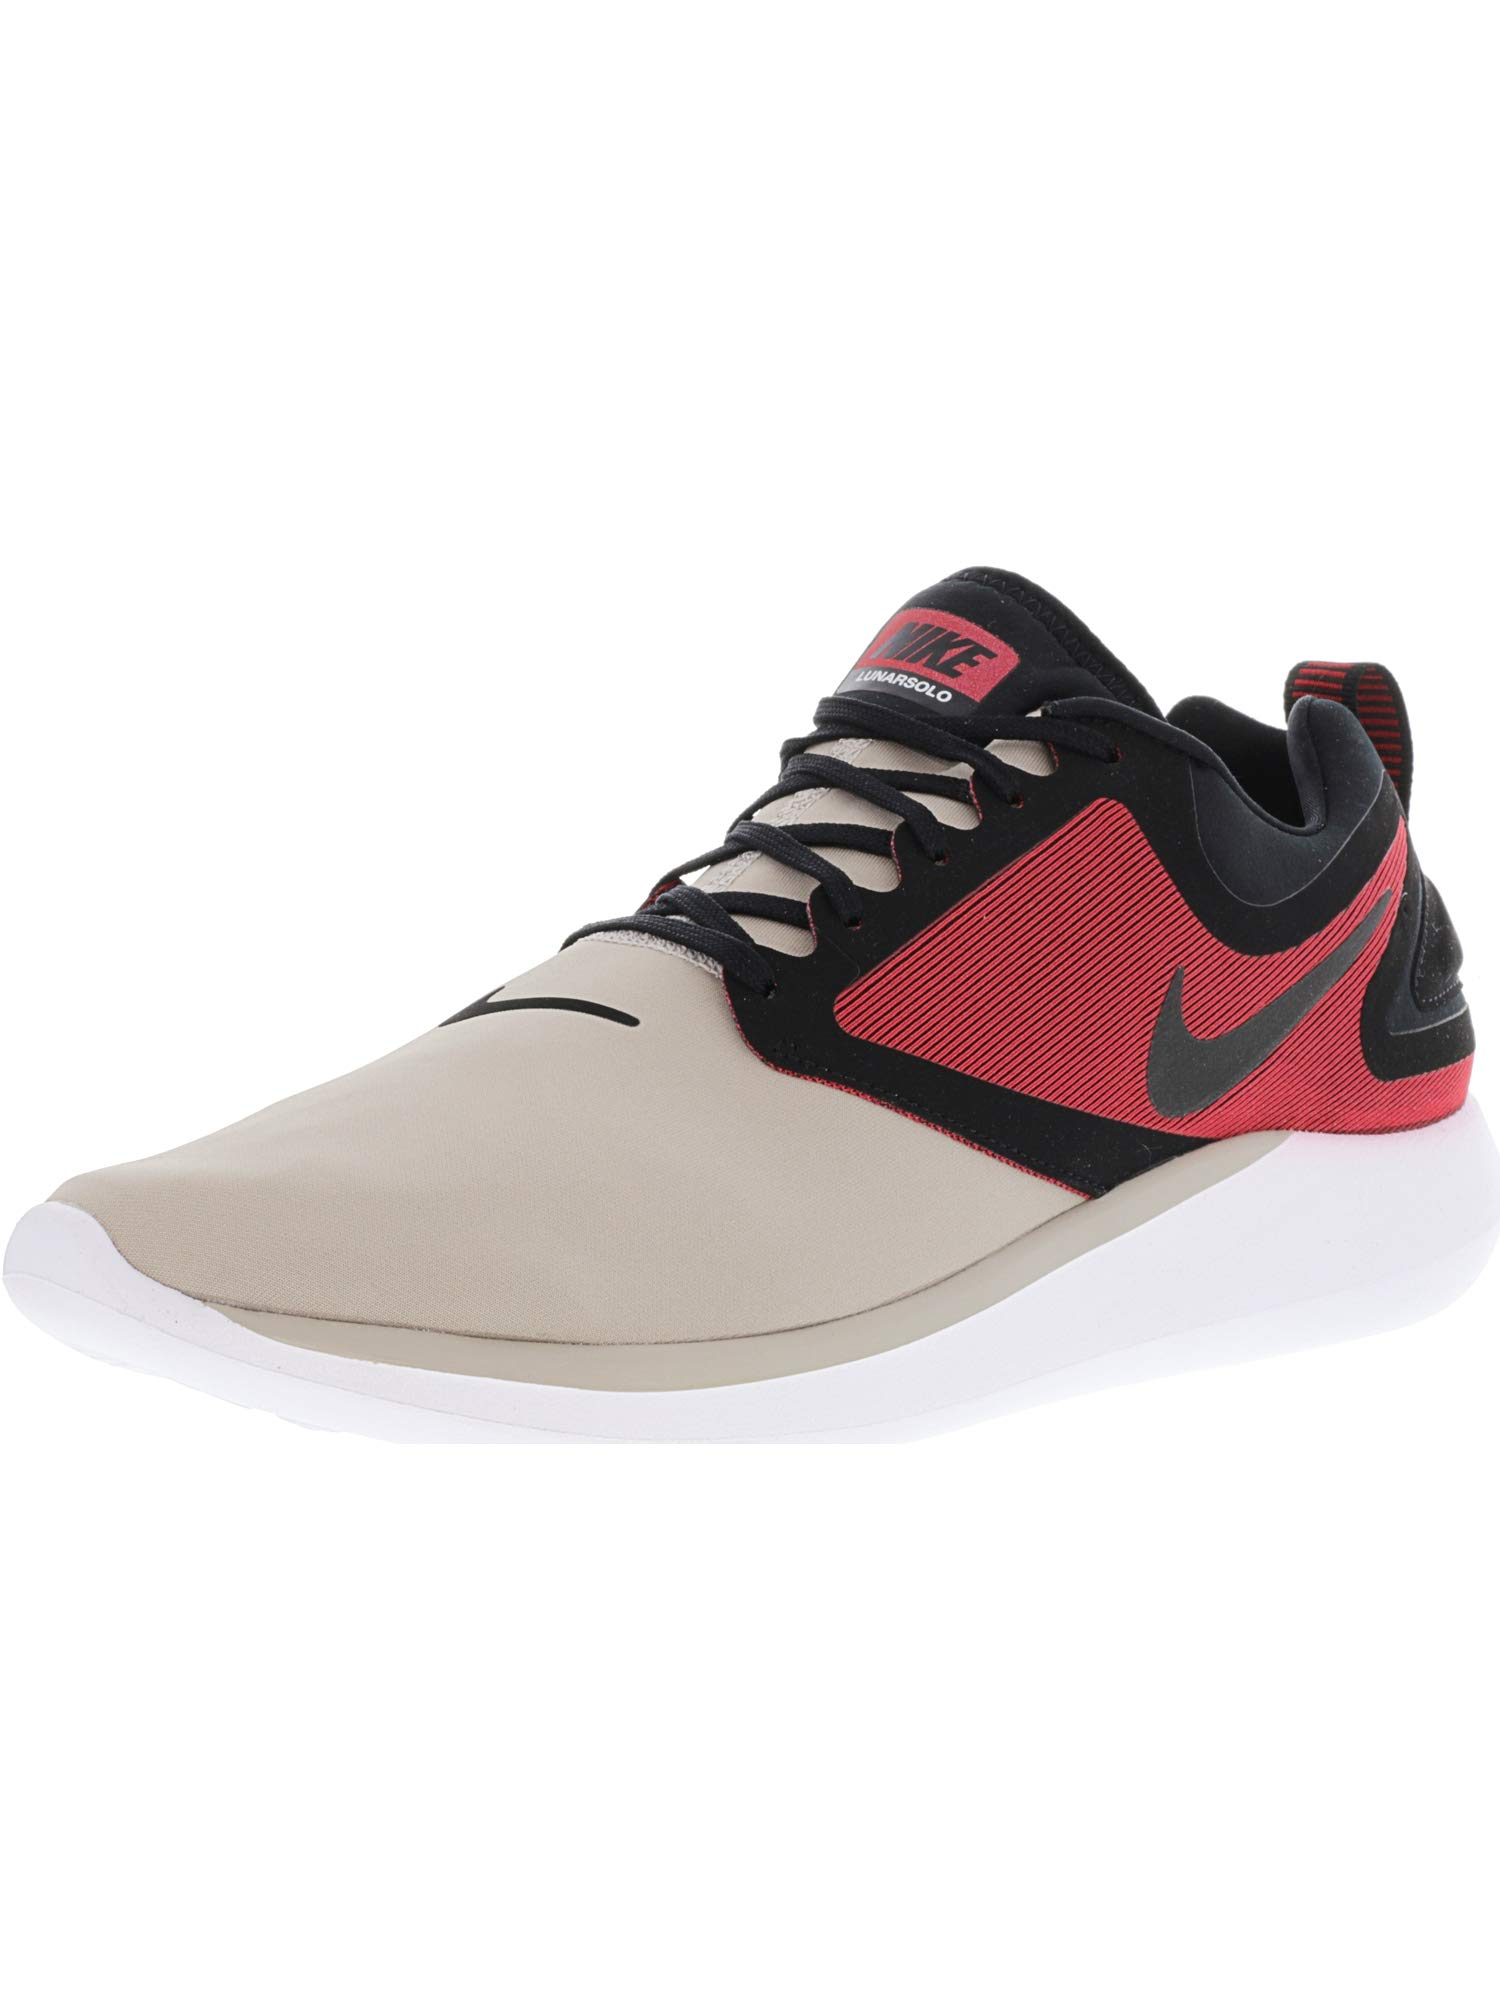 the latest dabf5 a887f Galleon - NIKE Men s Lunarsolo Cobblestone White-Tough Red Ankle-High  Running Shoe - 11M